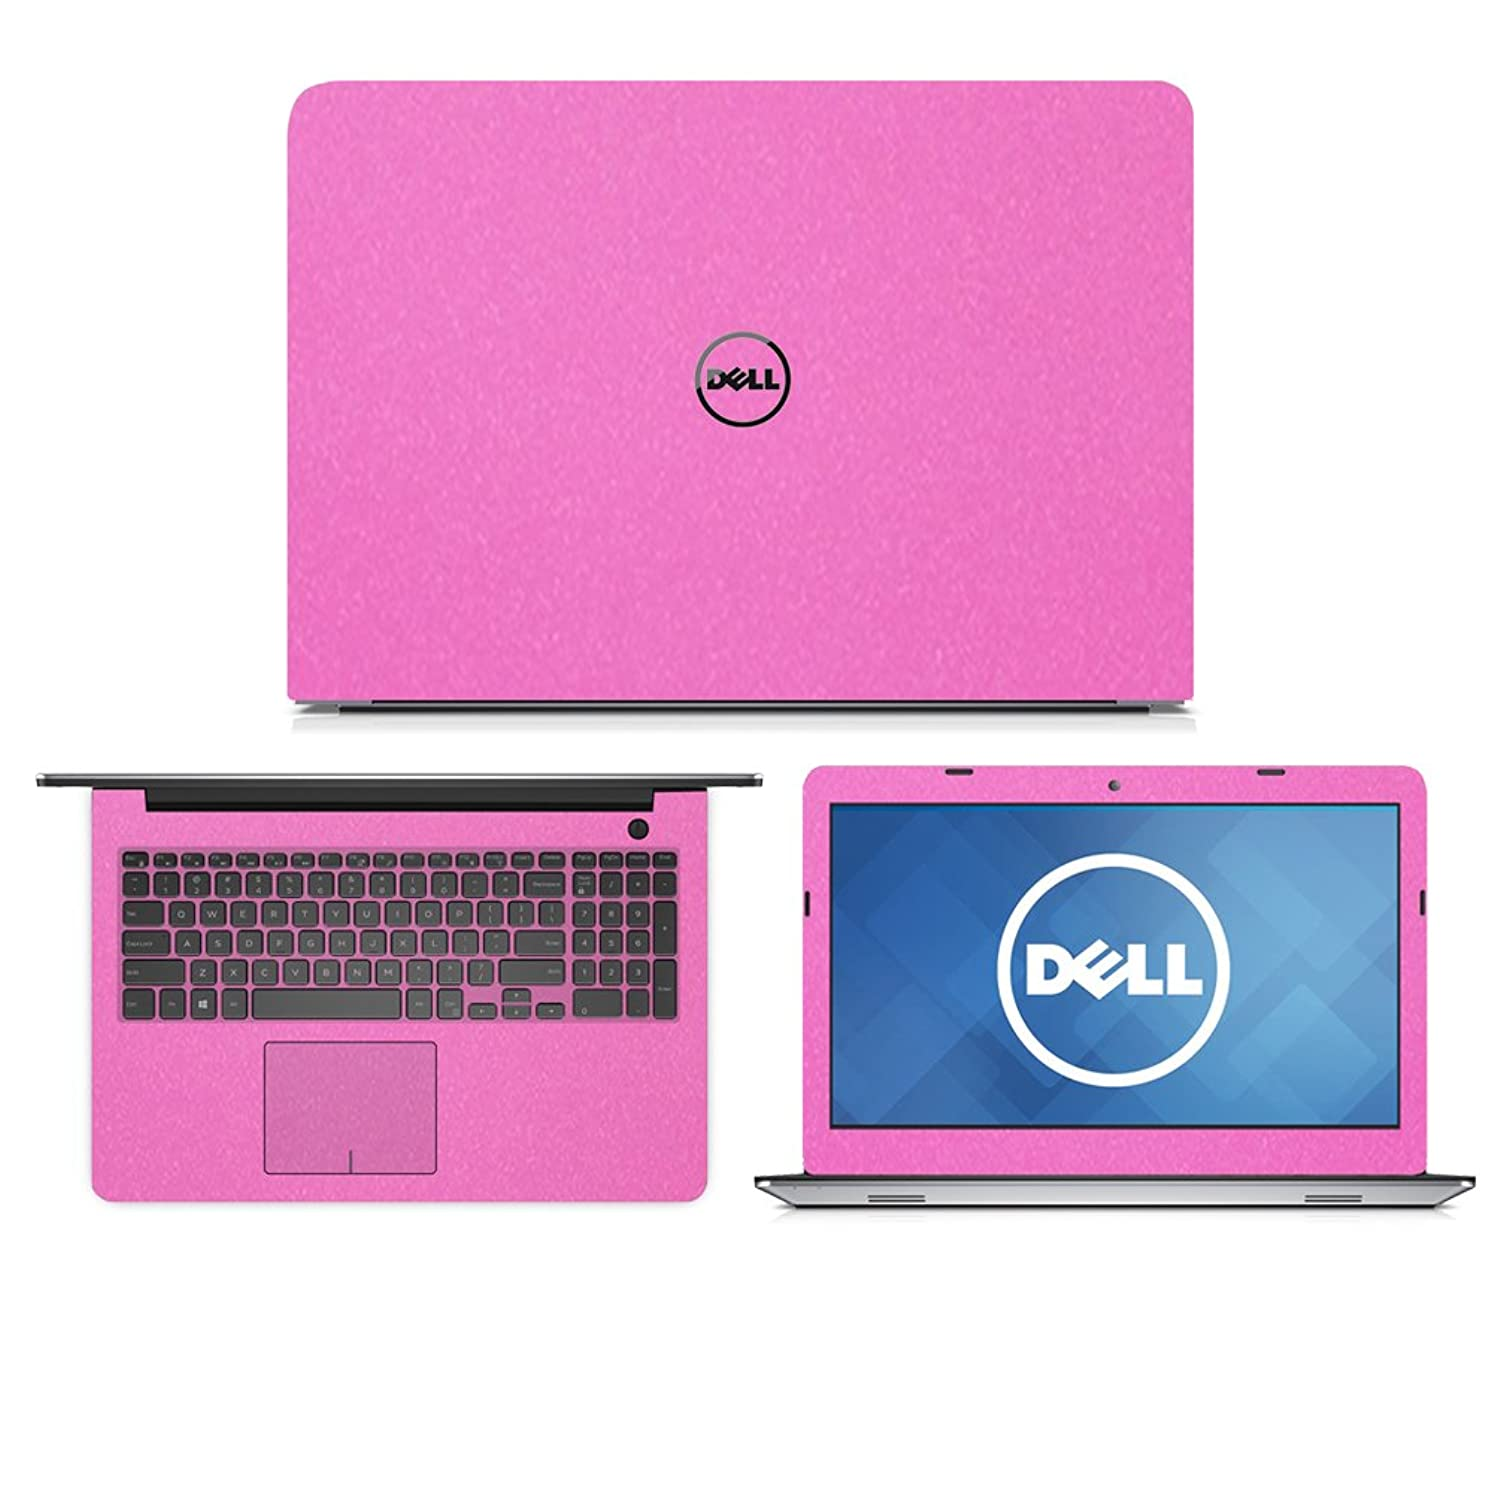 Sparkling Pink Fiber skin decal wrap skin Case for Dell Inspiron 15 5555 5558 5559 15.6